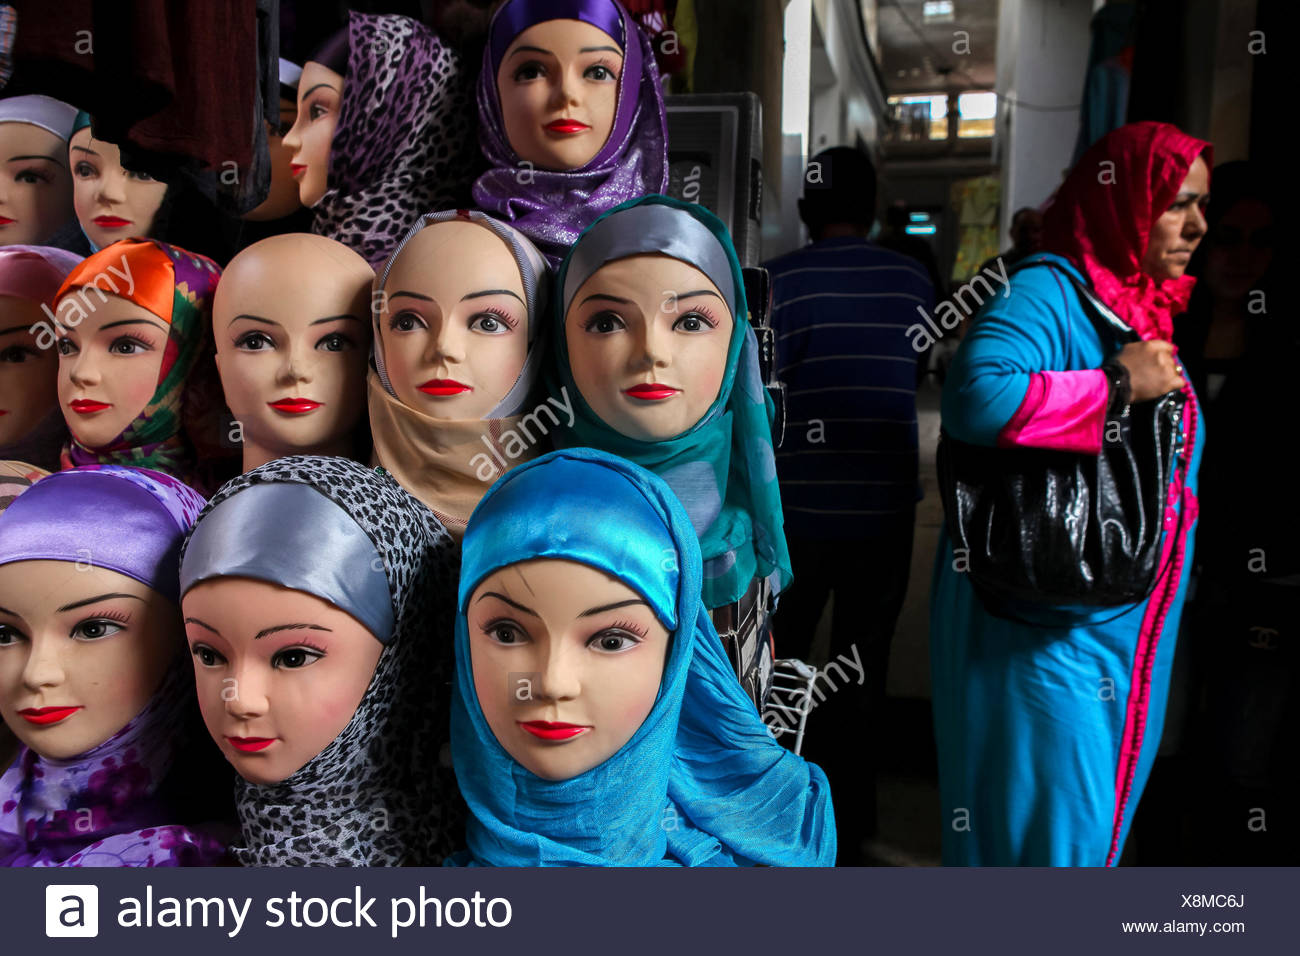 A woman walks past a selection of mannequin heads displaying hijabs in Fez, Morocco. - Stock Image